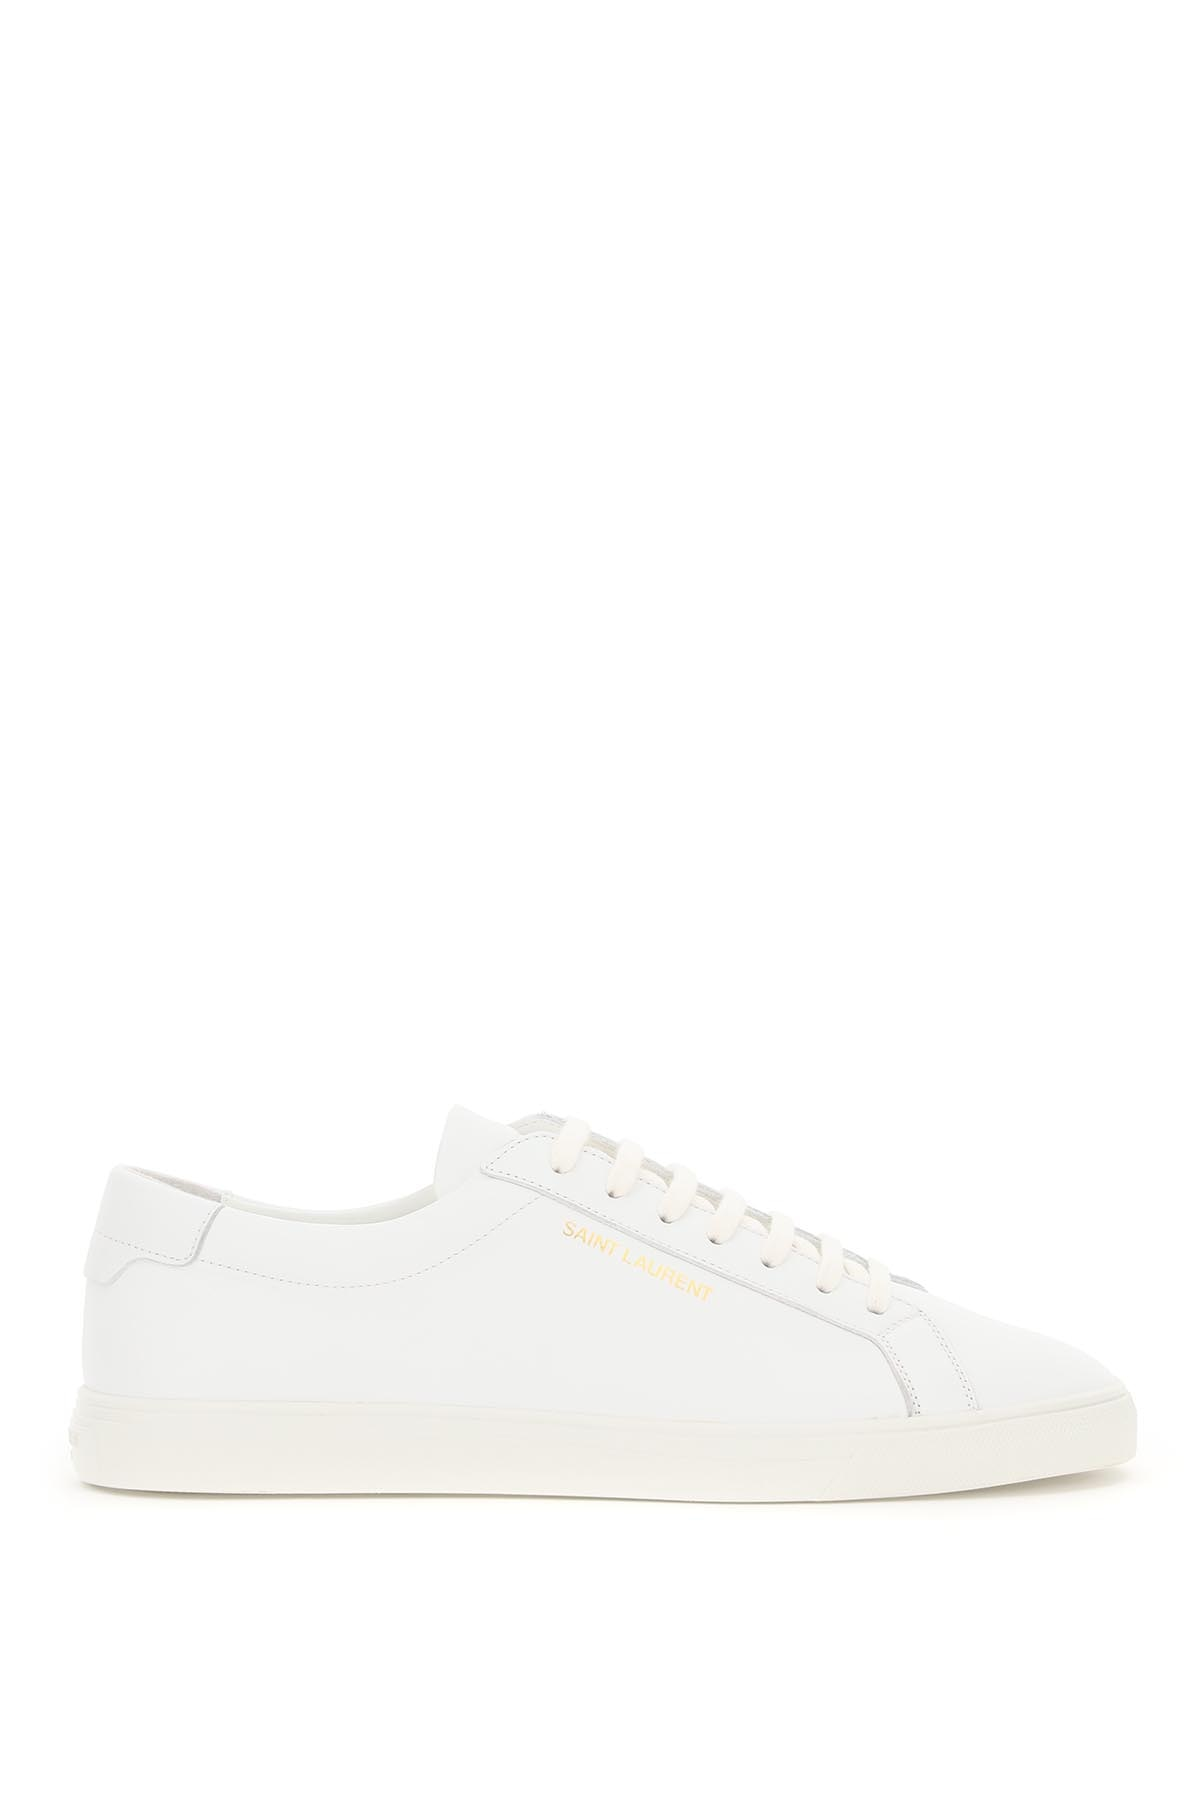 SAINT LAURENT ANTDY LEATHER SNEAKERS 41 White Leather